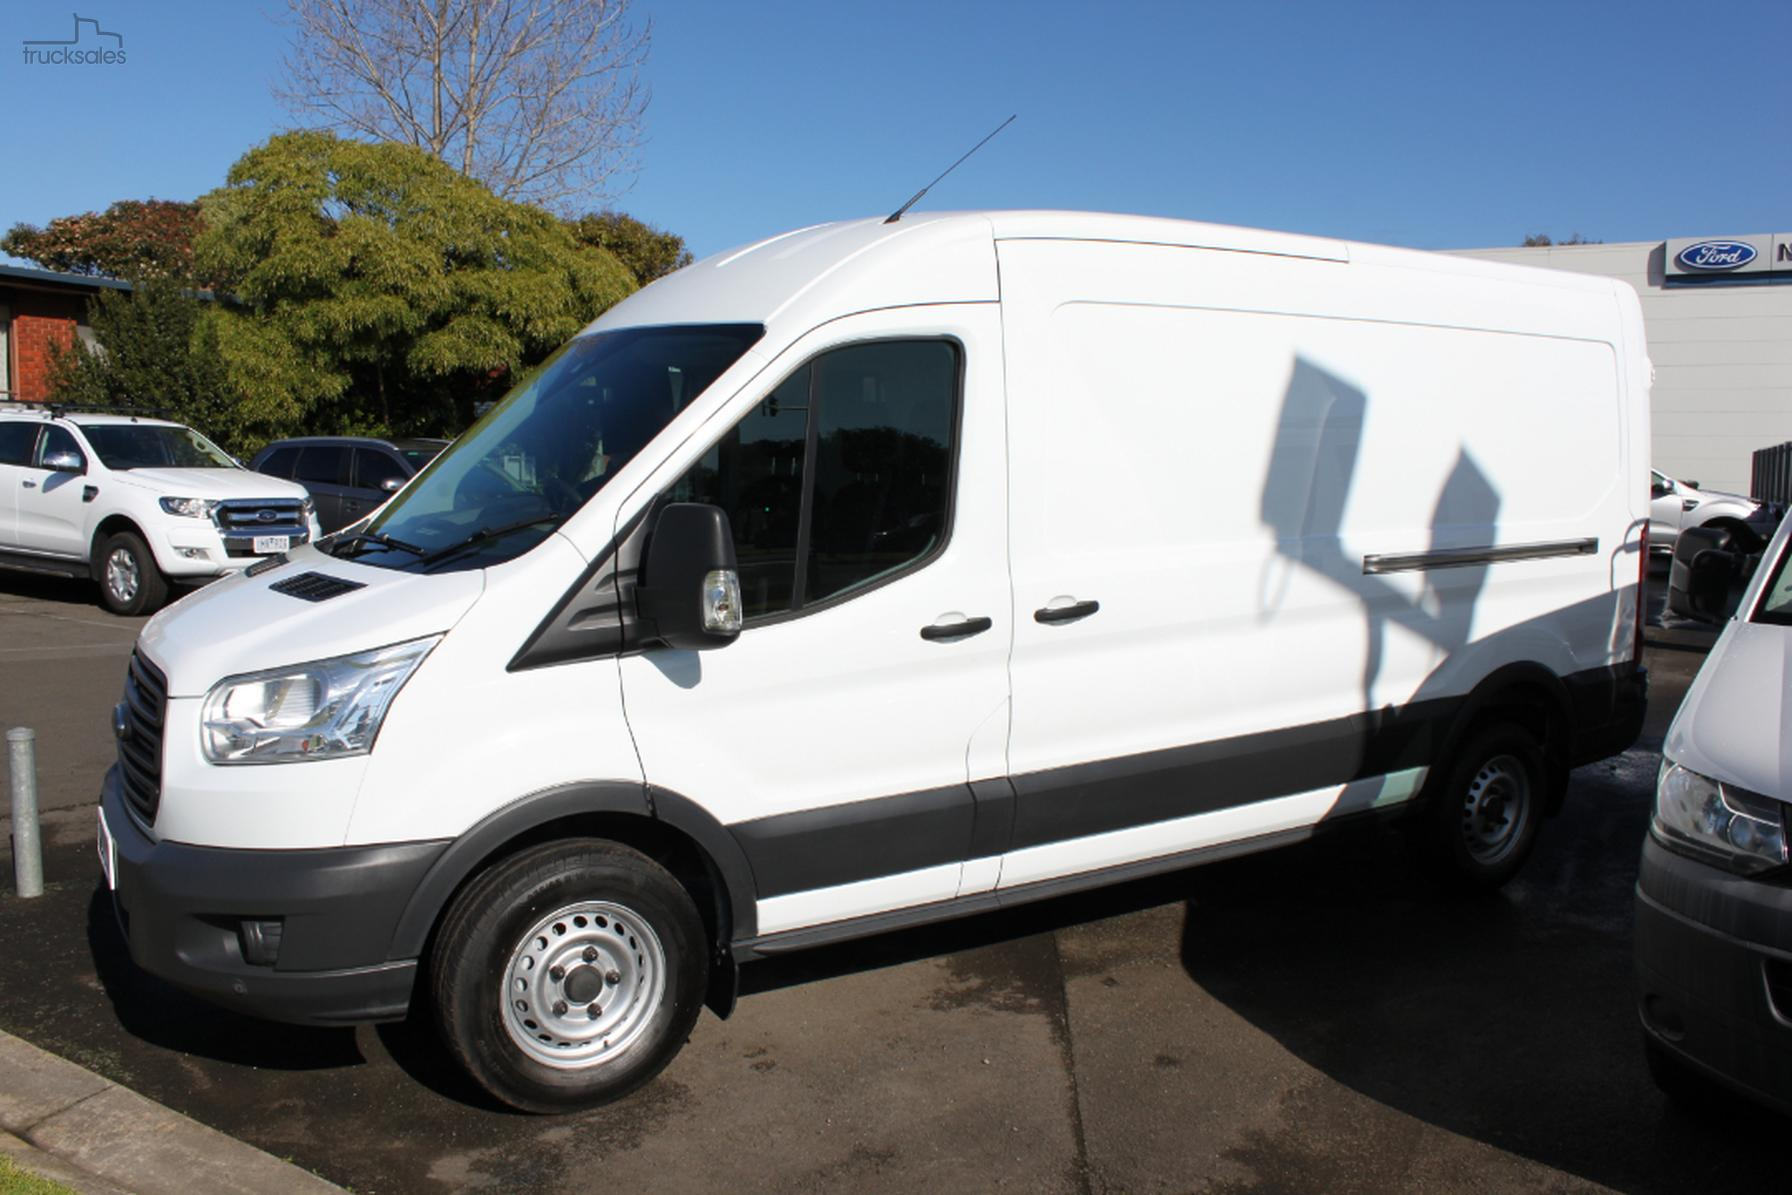 cf9b683045 ... best supplier 7a658 ddbc2 2015 Ford Transit 350L VO LWB Manual -  trucksales.com. ...